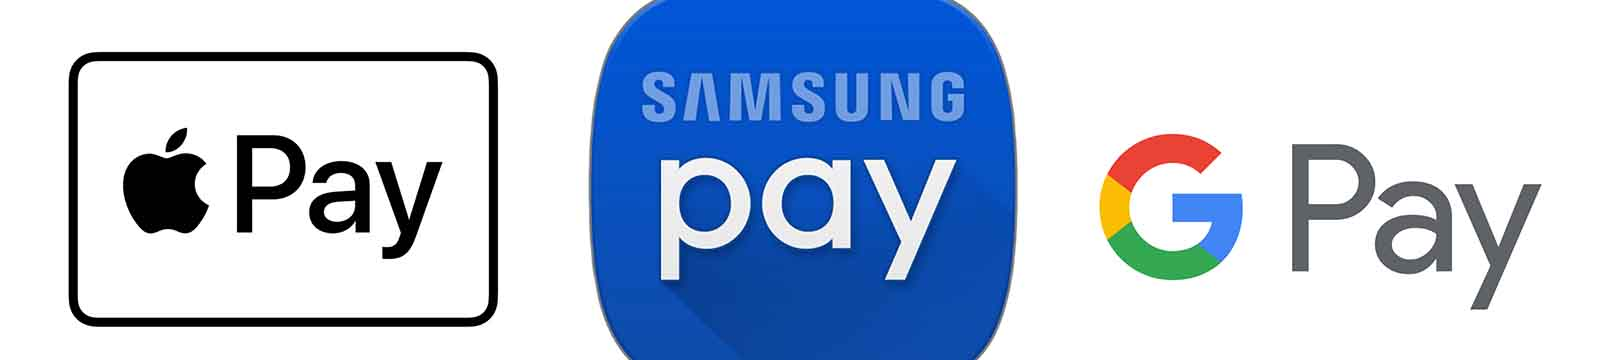 Apple pay, Samsung Pay, and Google Pay logos